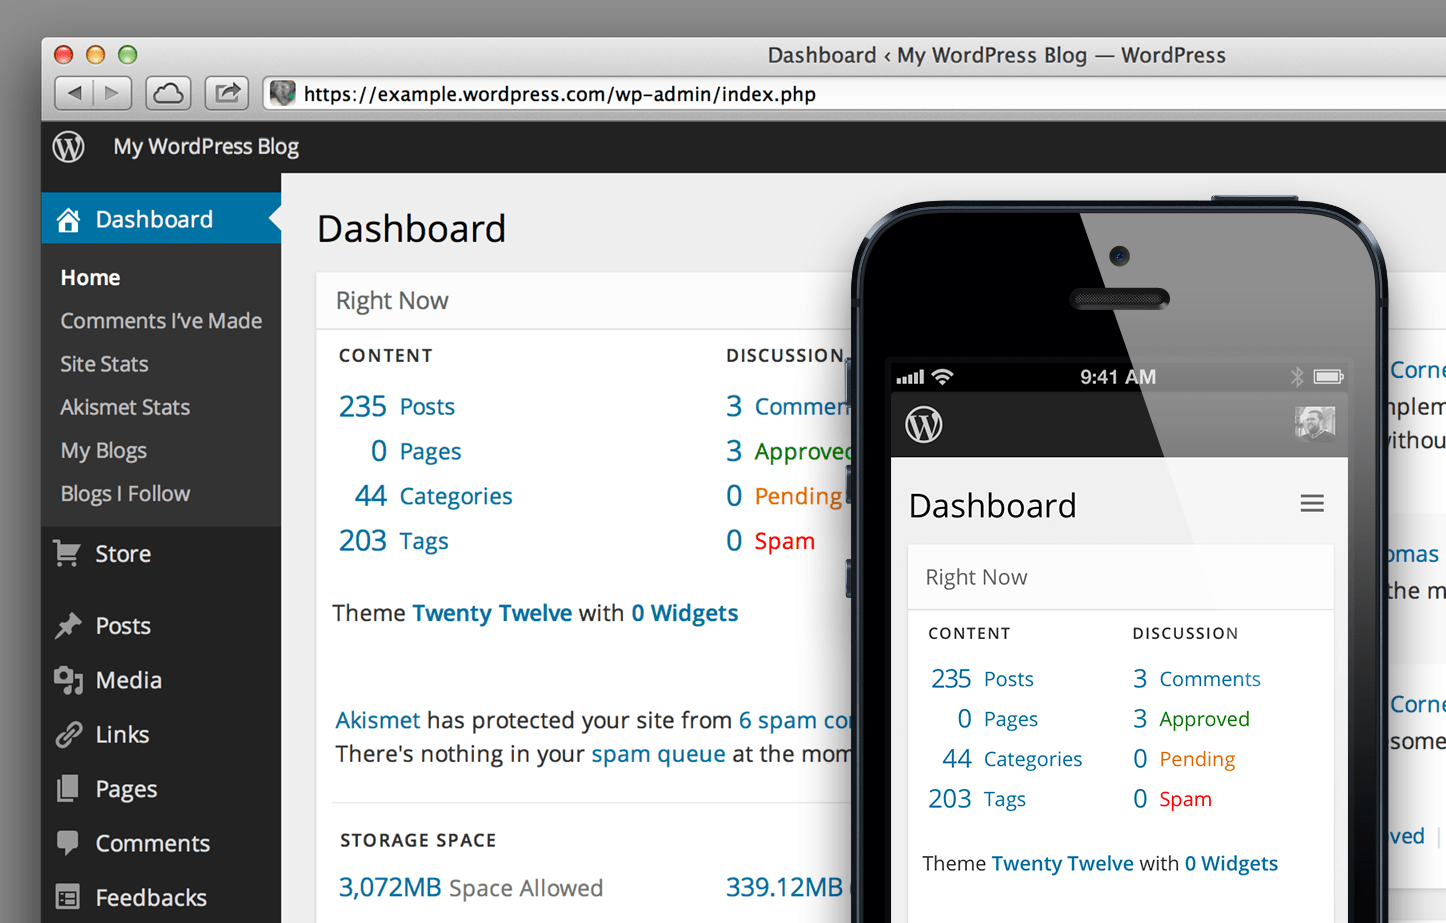 Screenshot of the new dashboard design